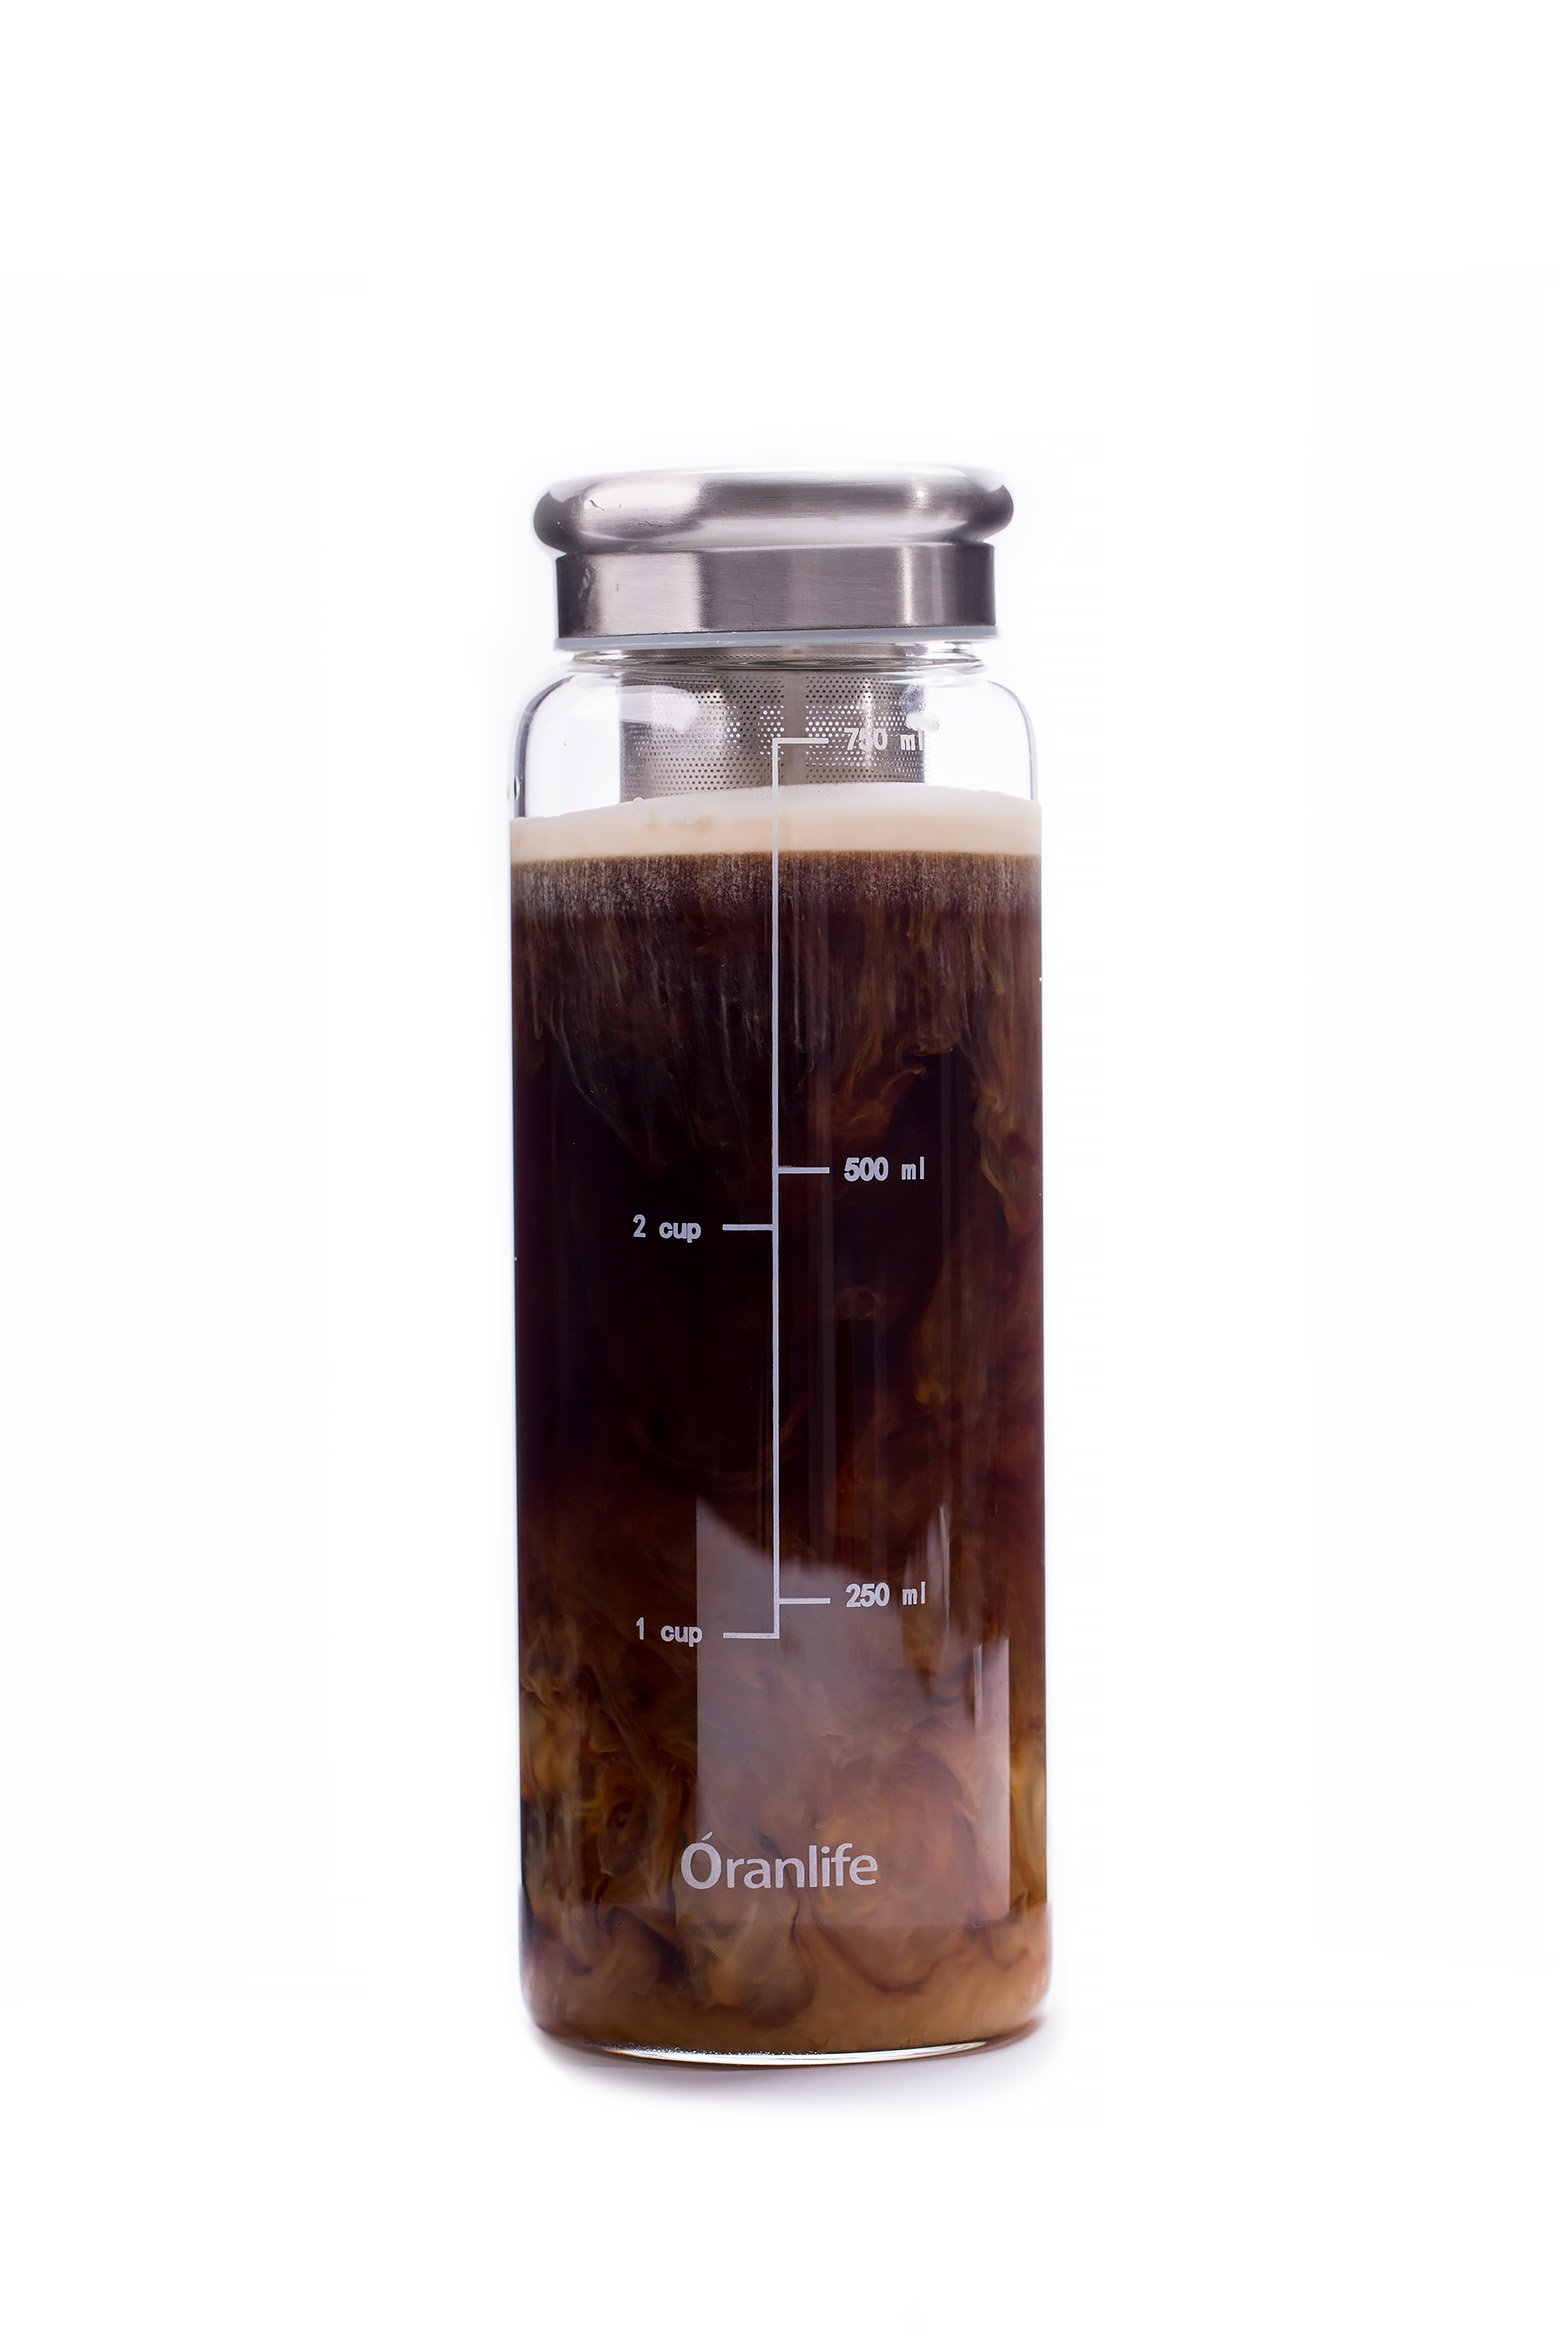 Cold Brew Coffee Maker, Portable Iced Coffee Maker with Airtight Lid and Easy To Clean Reusable Stainless Steel Mesh Filter for Iced Tea Maker 3cup 26oz by Oranlife